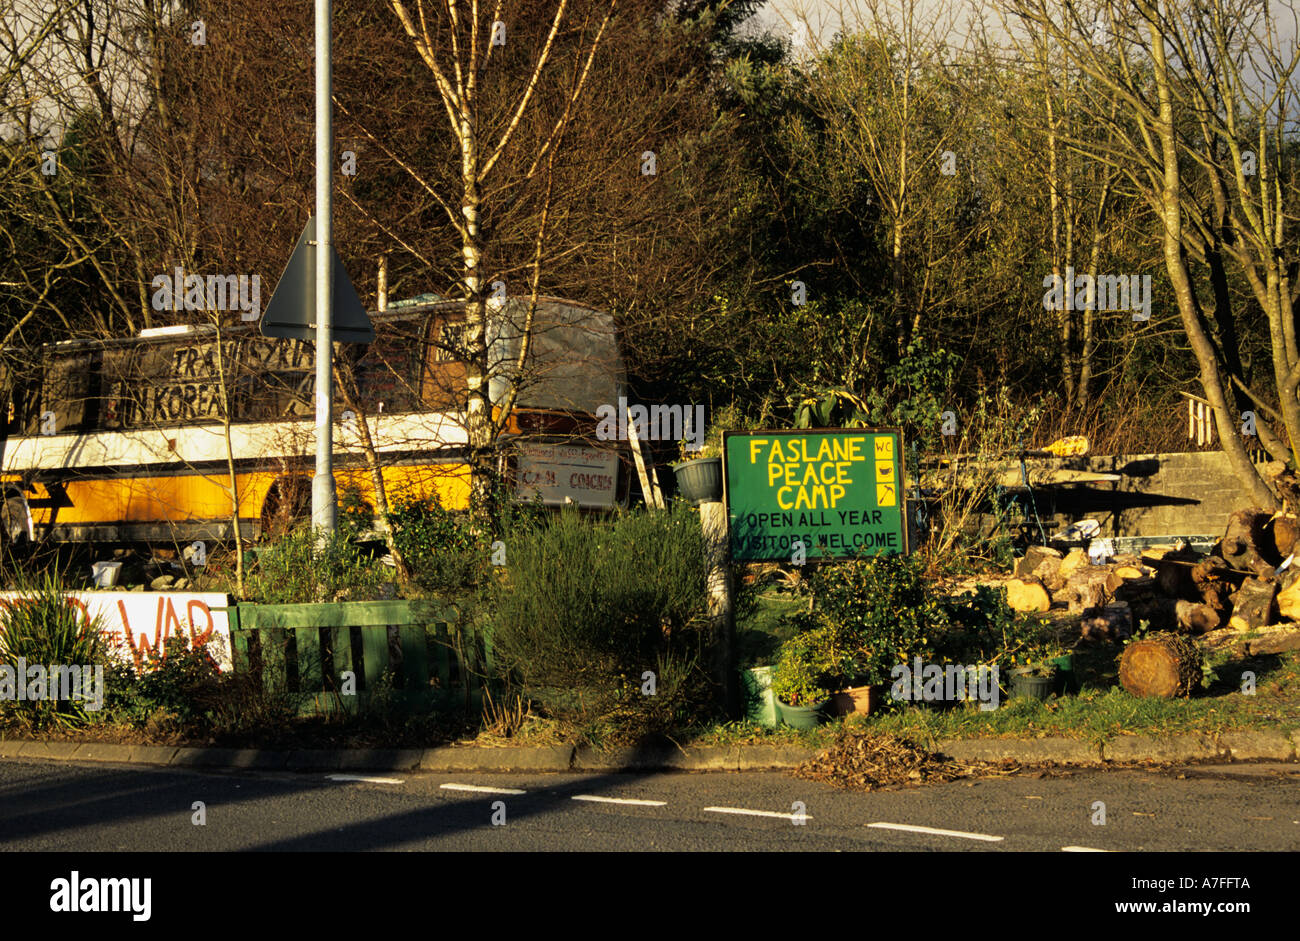 GARELOCHHEAD ARGYLL SCOTLAND UK February The Faslane Peace Camp where  people protesting against Britain's Nuclear deterrent - Stock Image